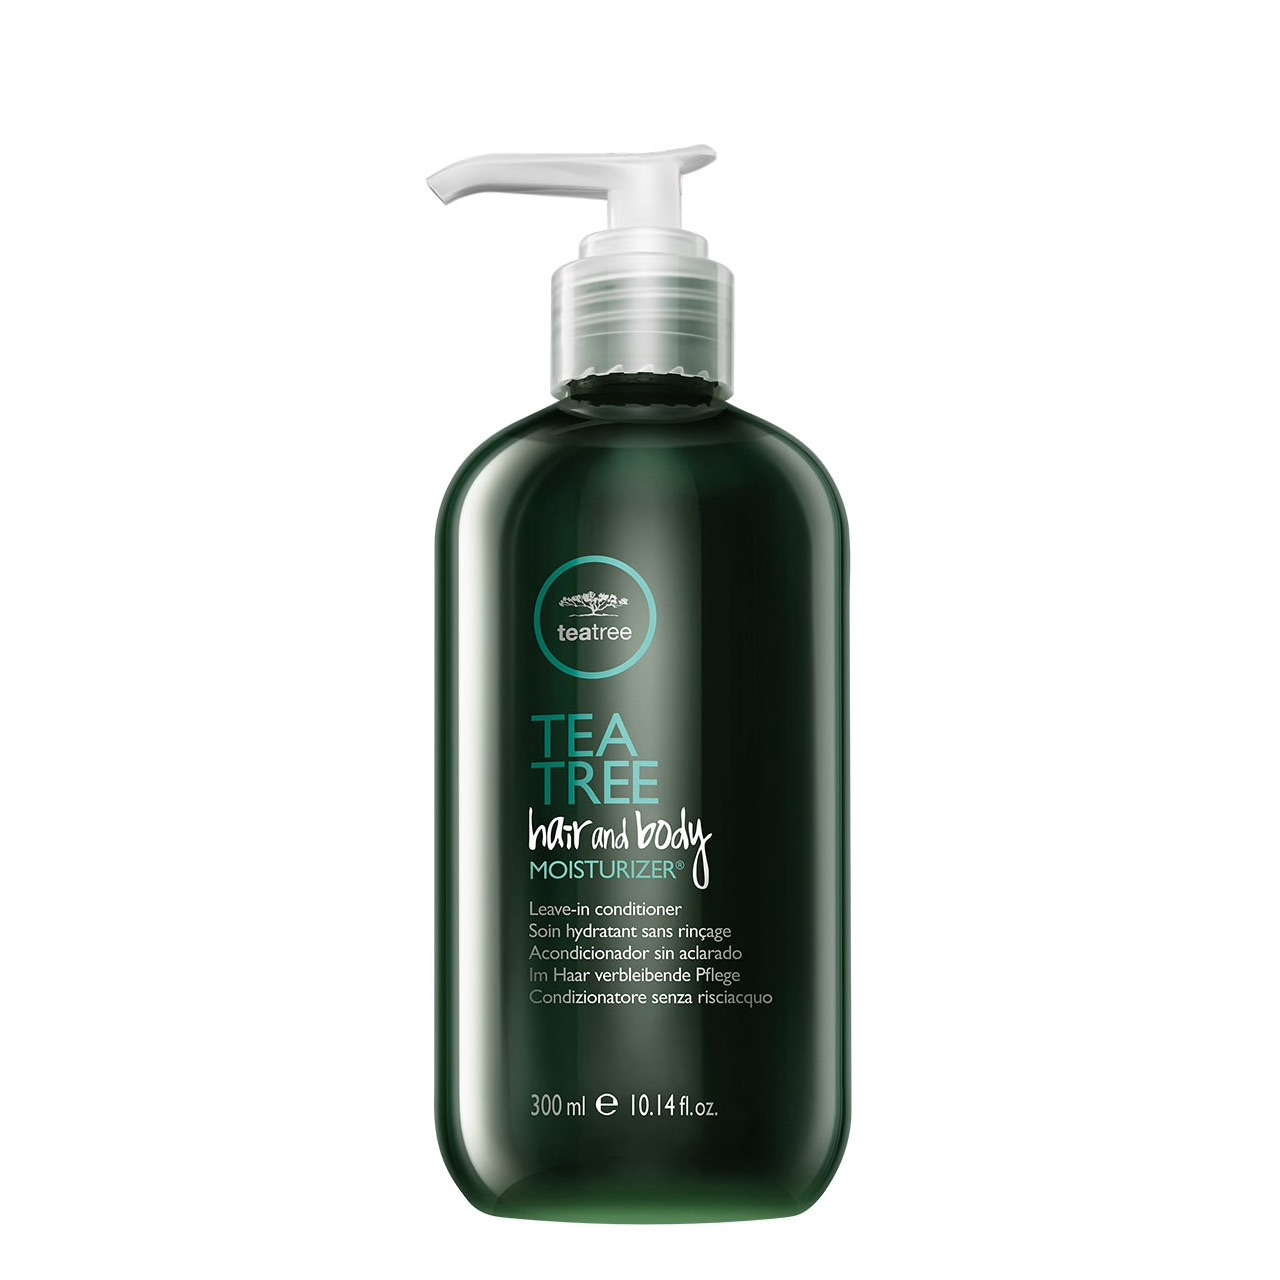 Tea Tree Hair & Body Moisturizer by Paul Mitchell